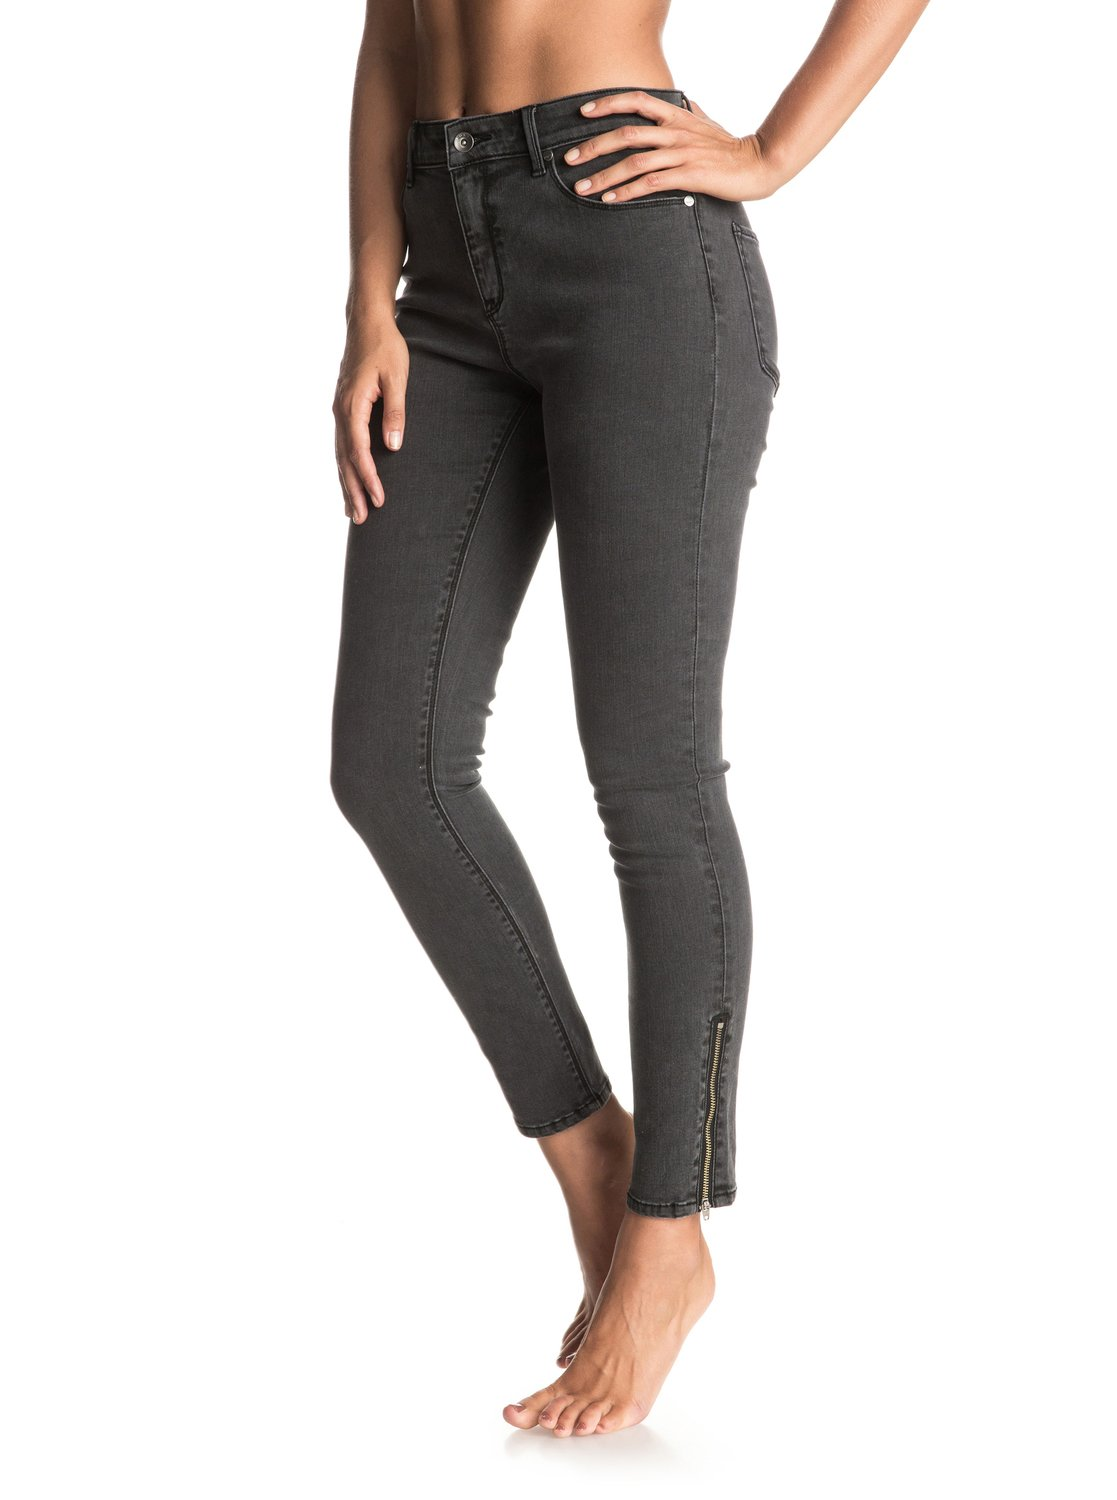 Your favorite high-rise fit just got skinnier. Shop Levi's® new women's high waisted super skinny jean that stretches, sculpts and molds to your body.